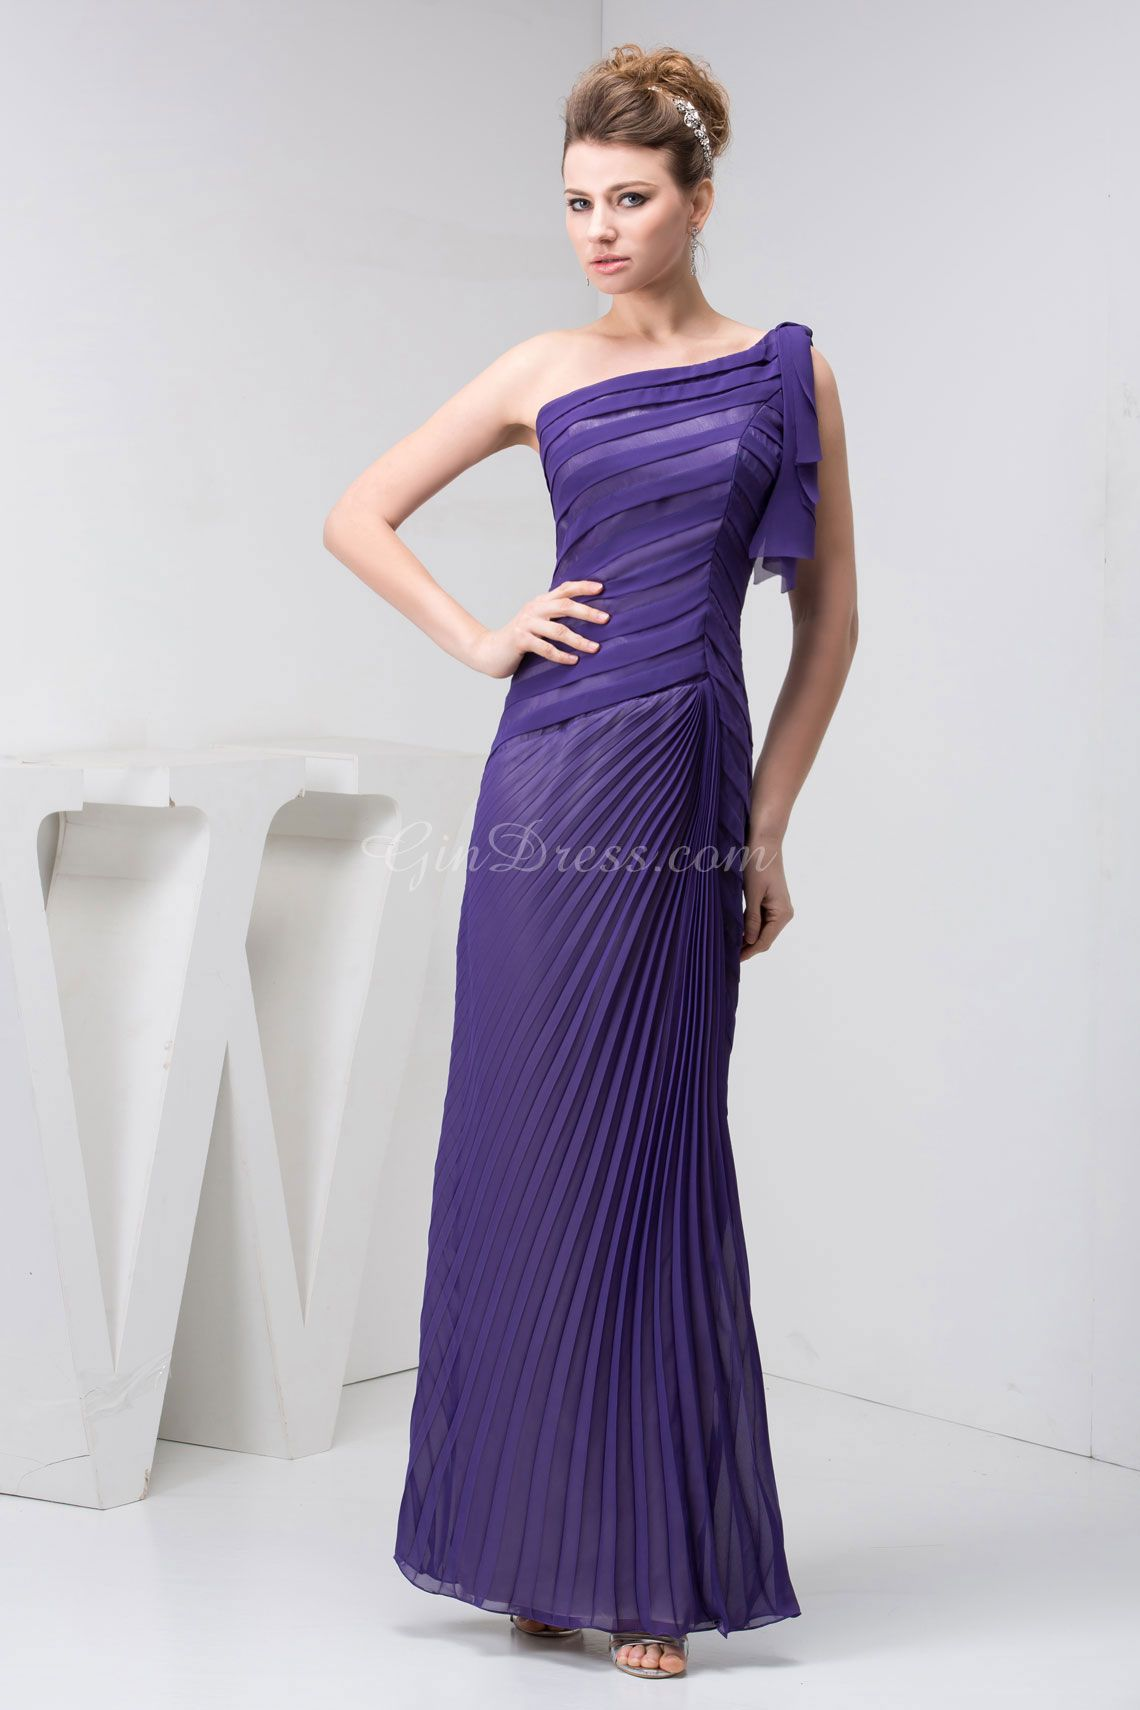 purple prom dresses purple prom dresses | TRAJES DE GALA ...